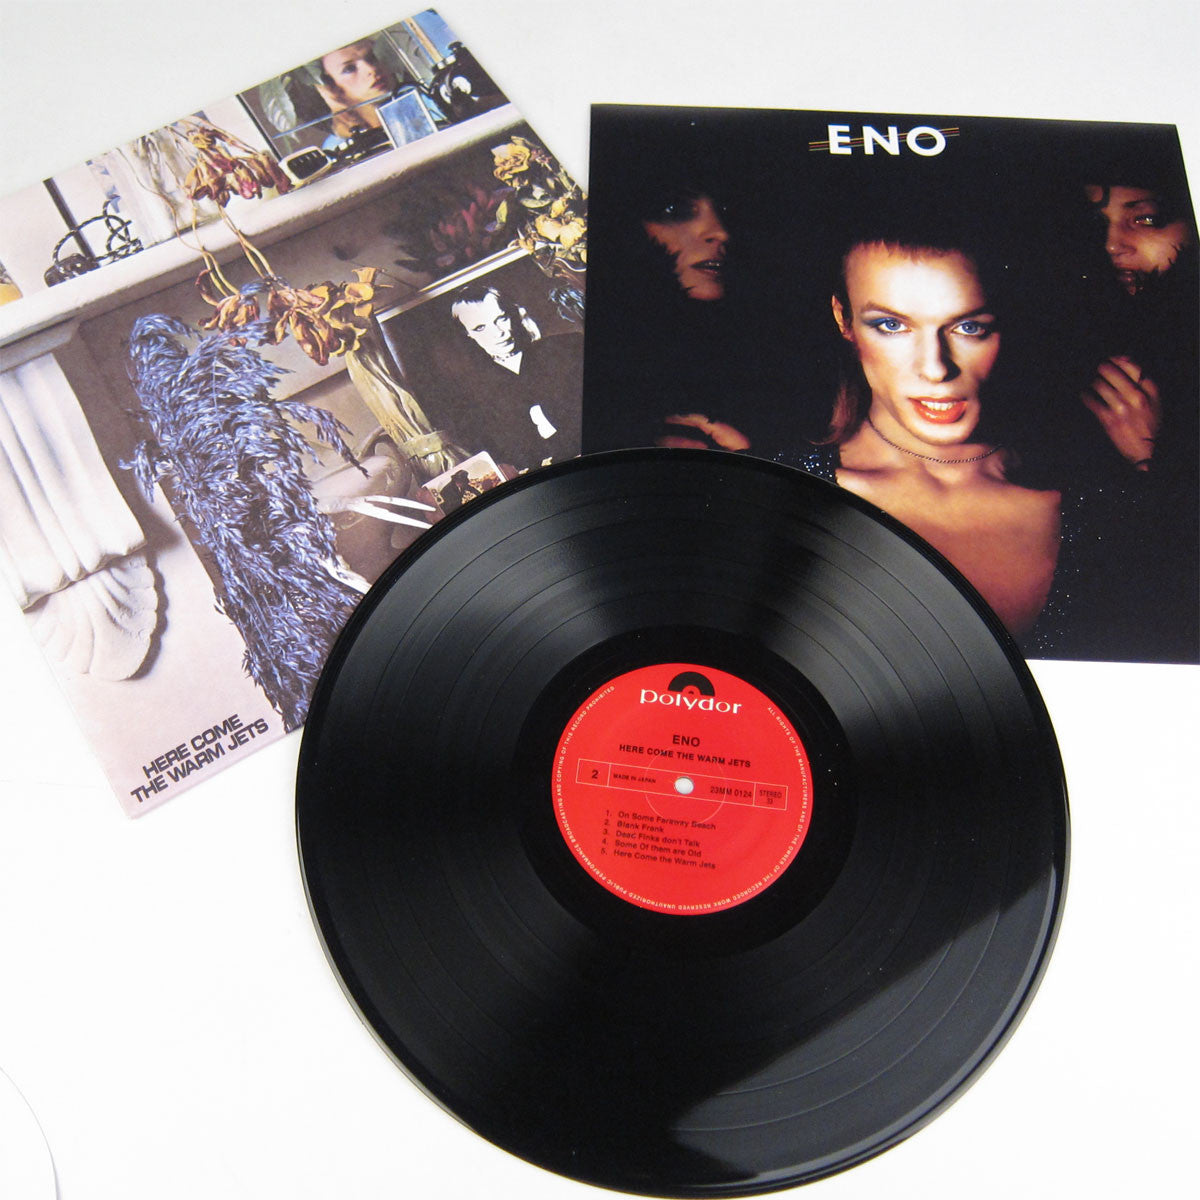 Brian Eno: Here Come The Warm Jets Vinyl LP detail